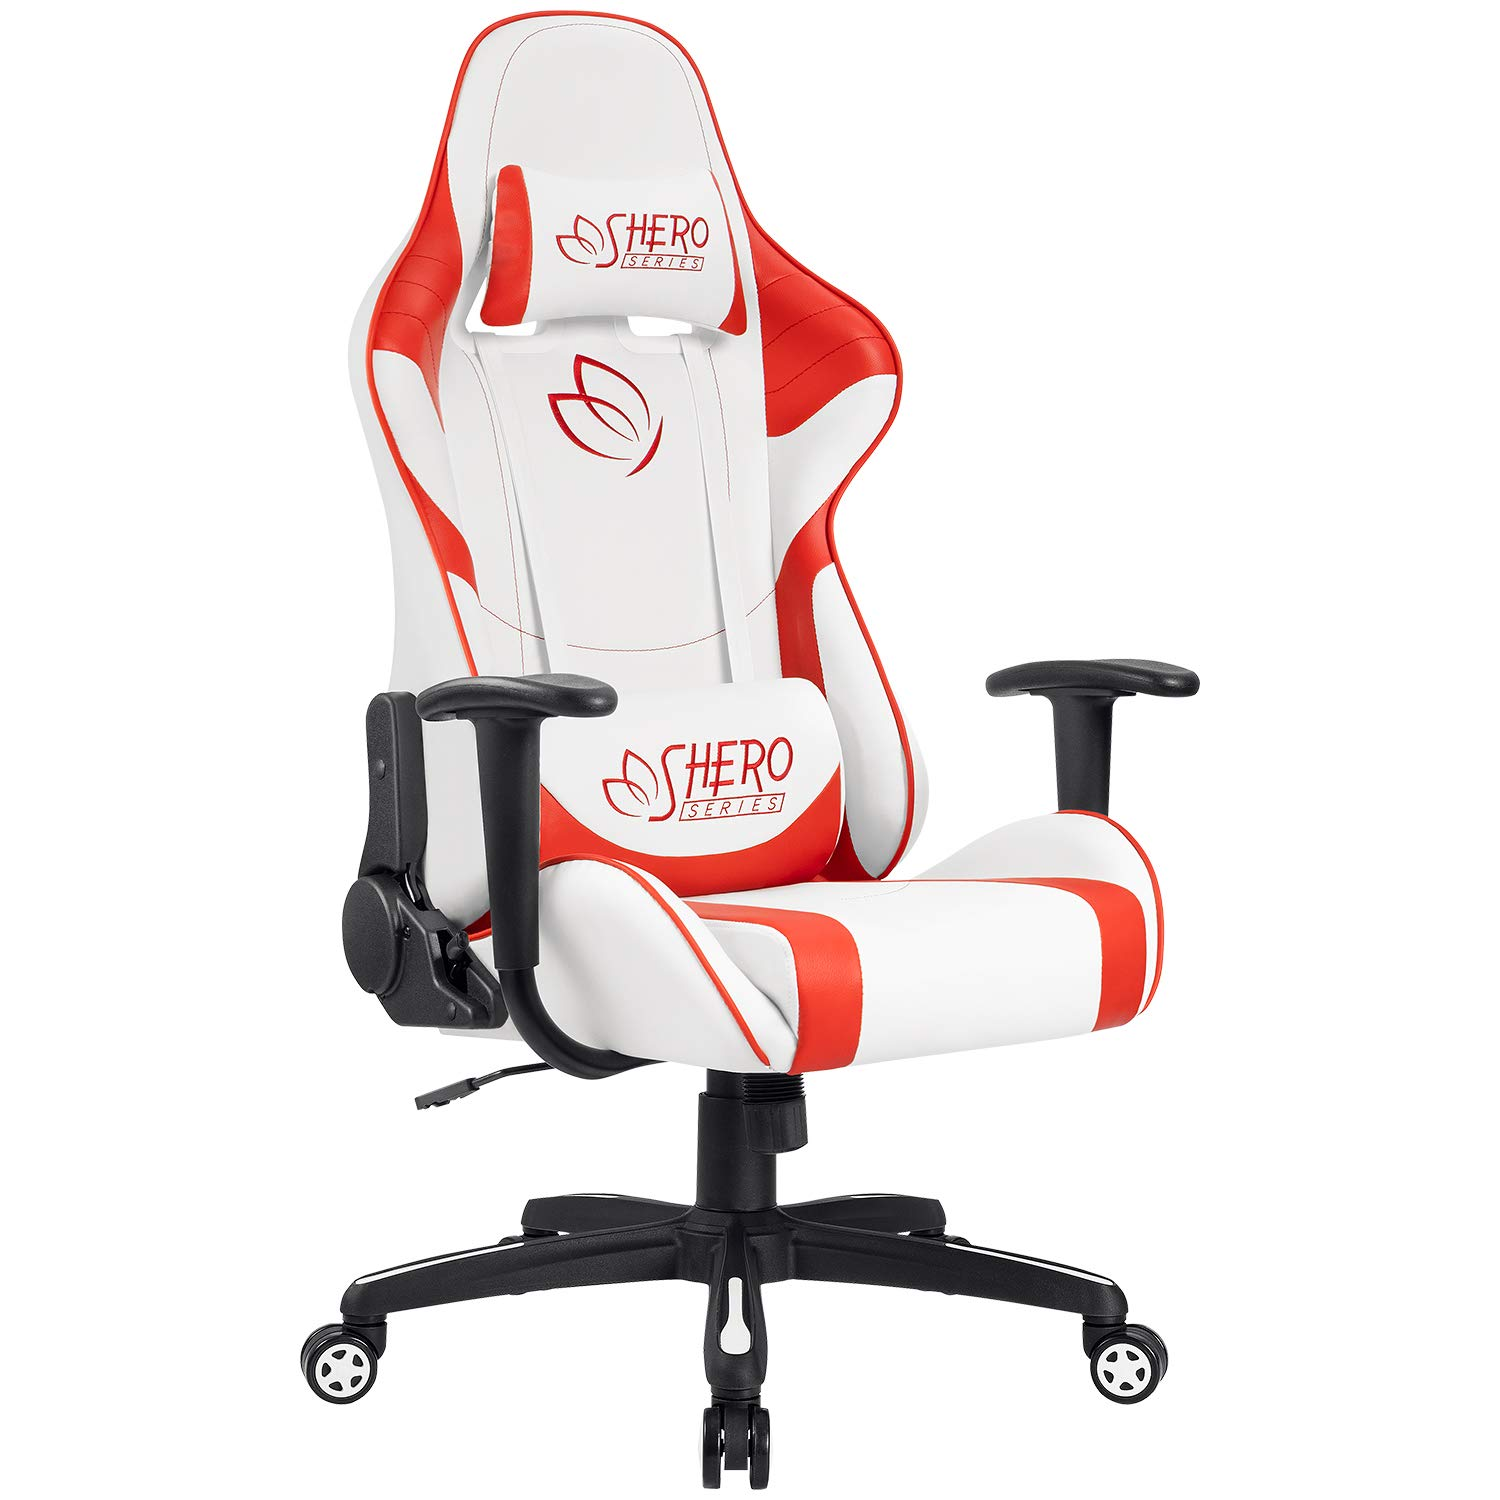 Homall Gaming Chair Racing Office Chair High Back Computer Desk Chair Leather Executive Adjustable Swivel Chair with Headrest and Lumbar Support (Red)